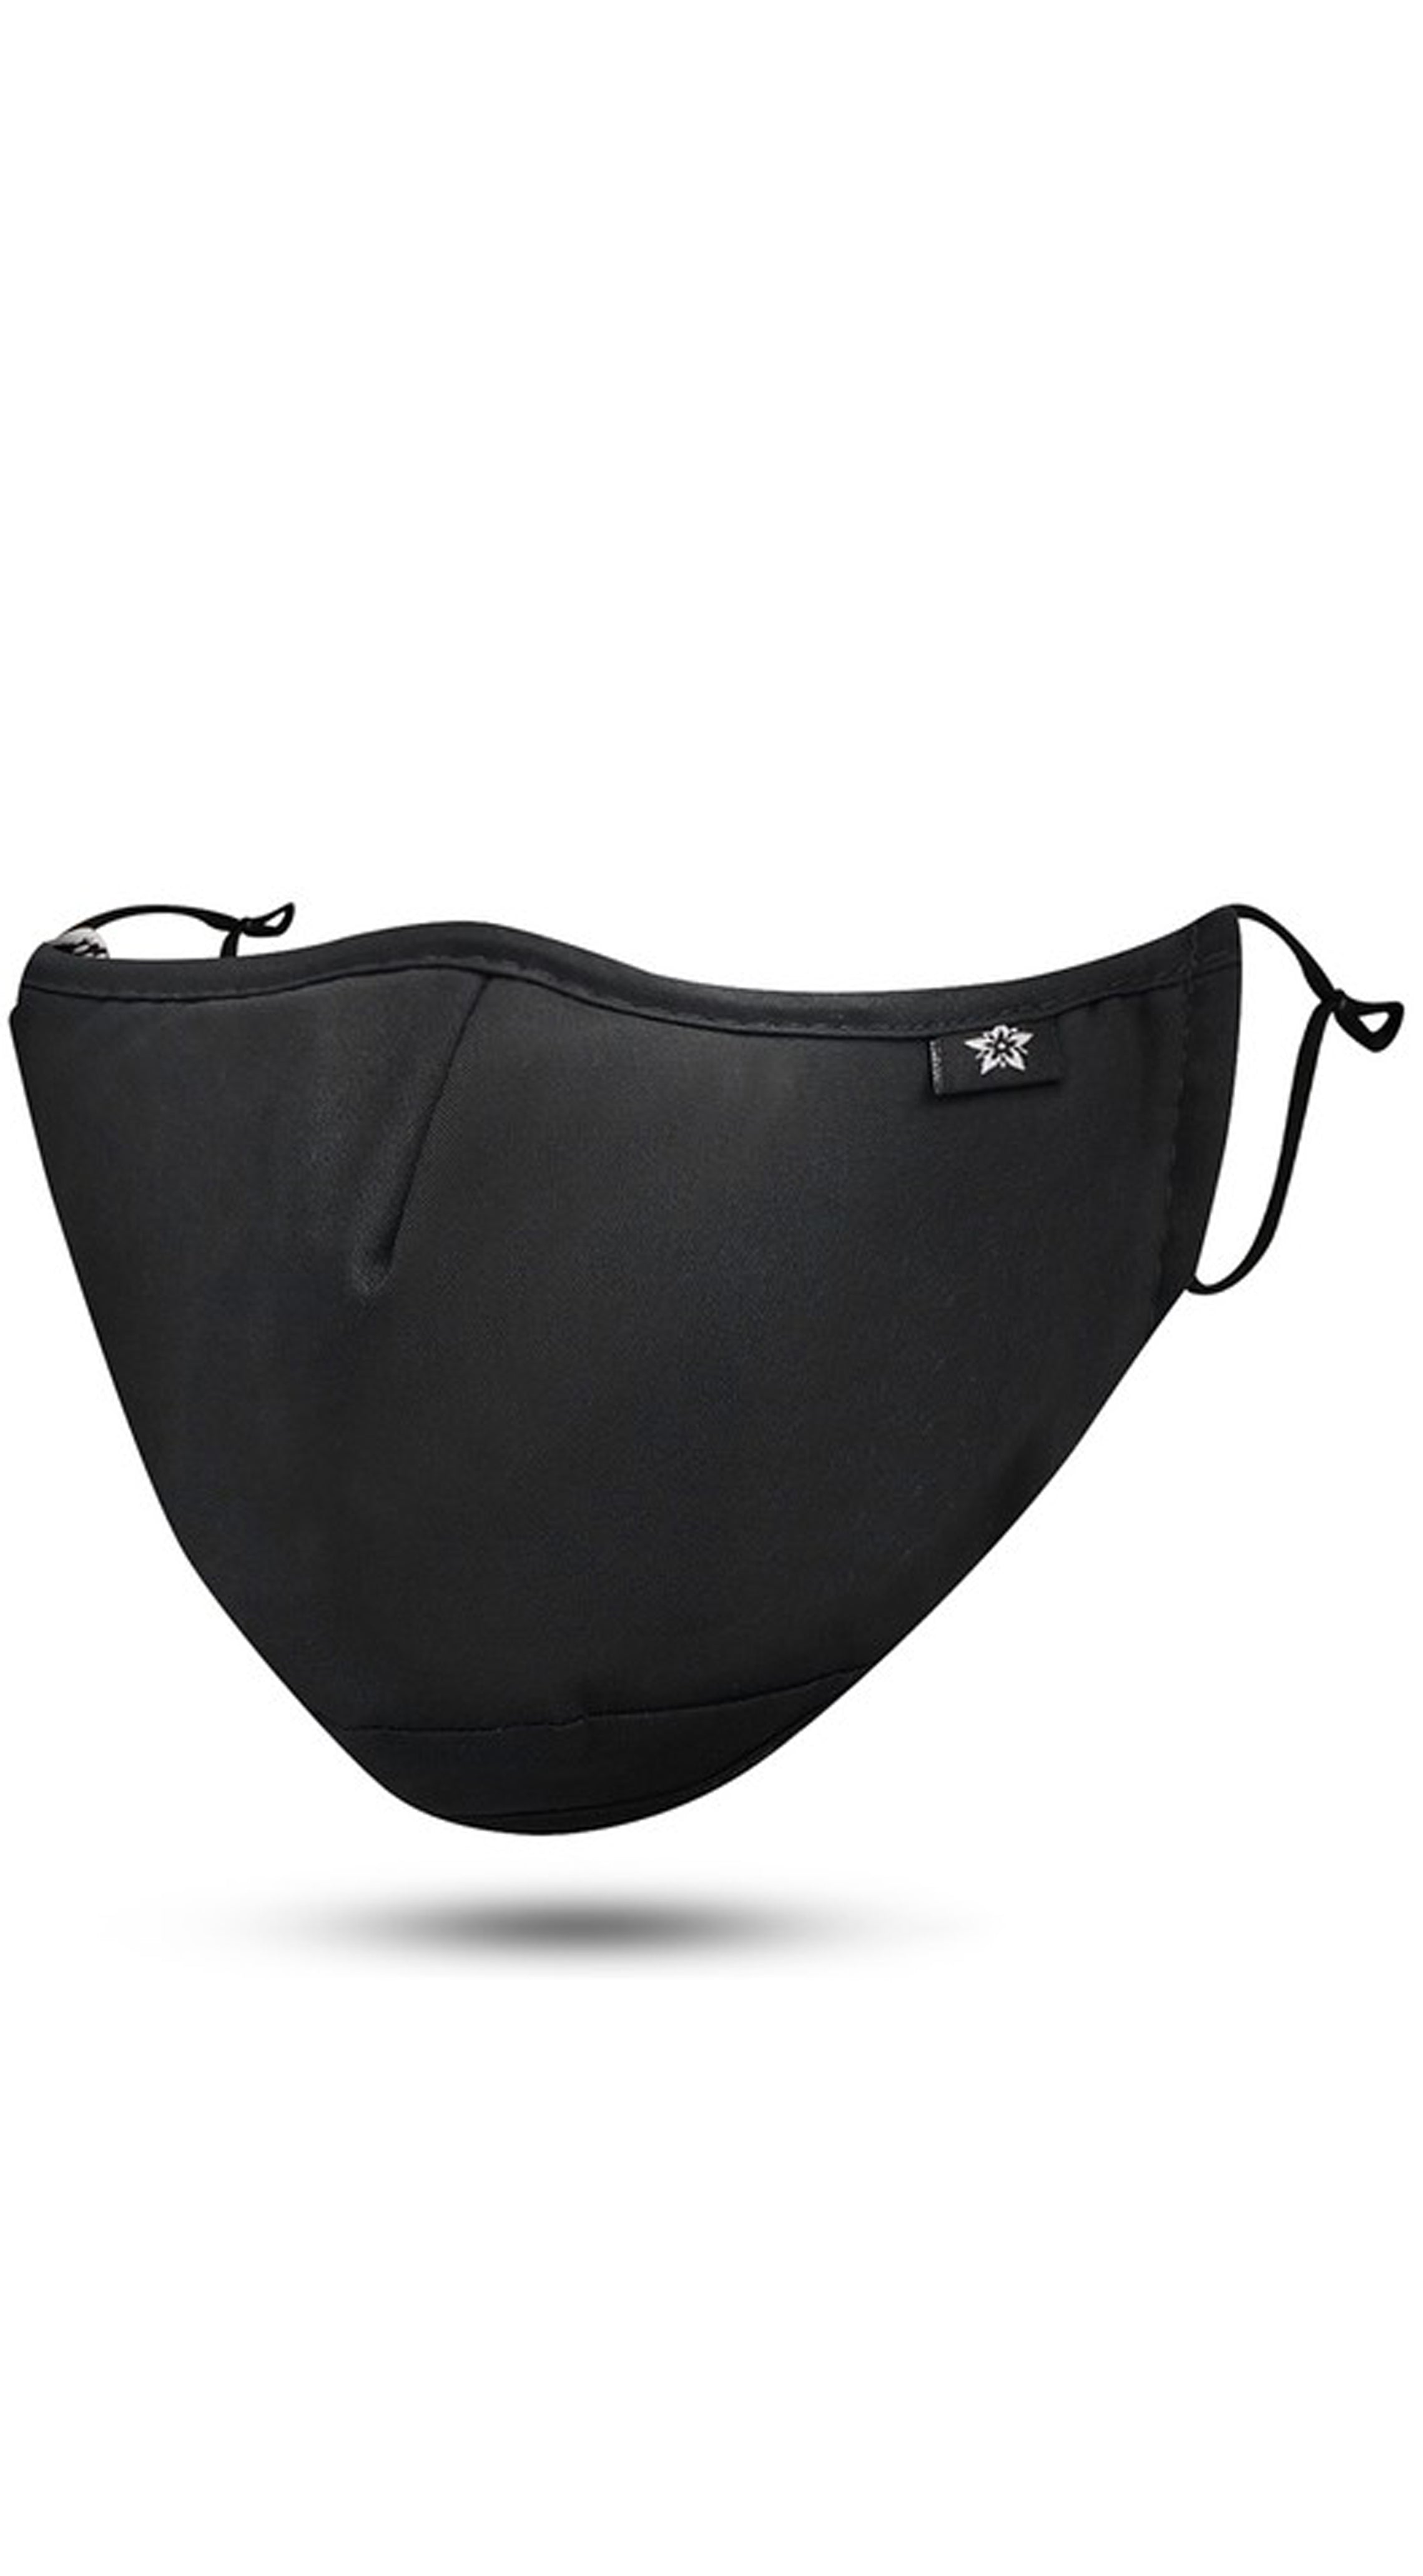 Black Adjustable Reusable Face Mask